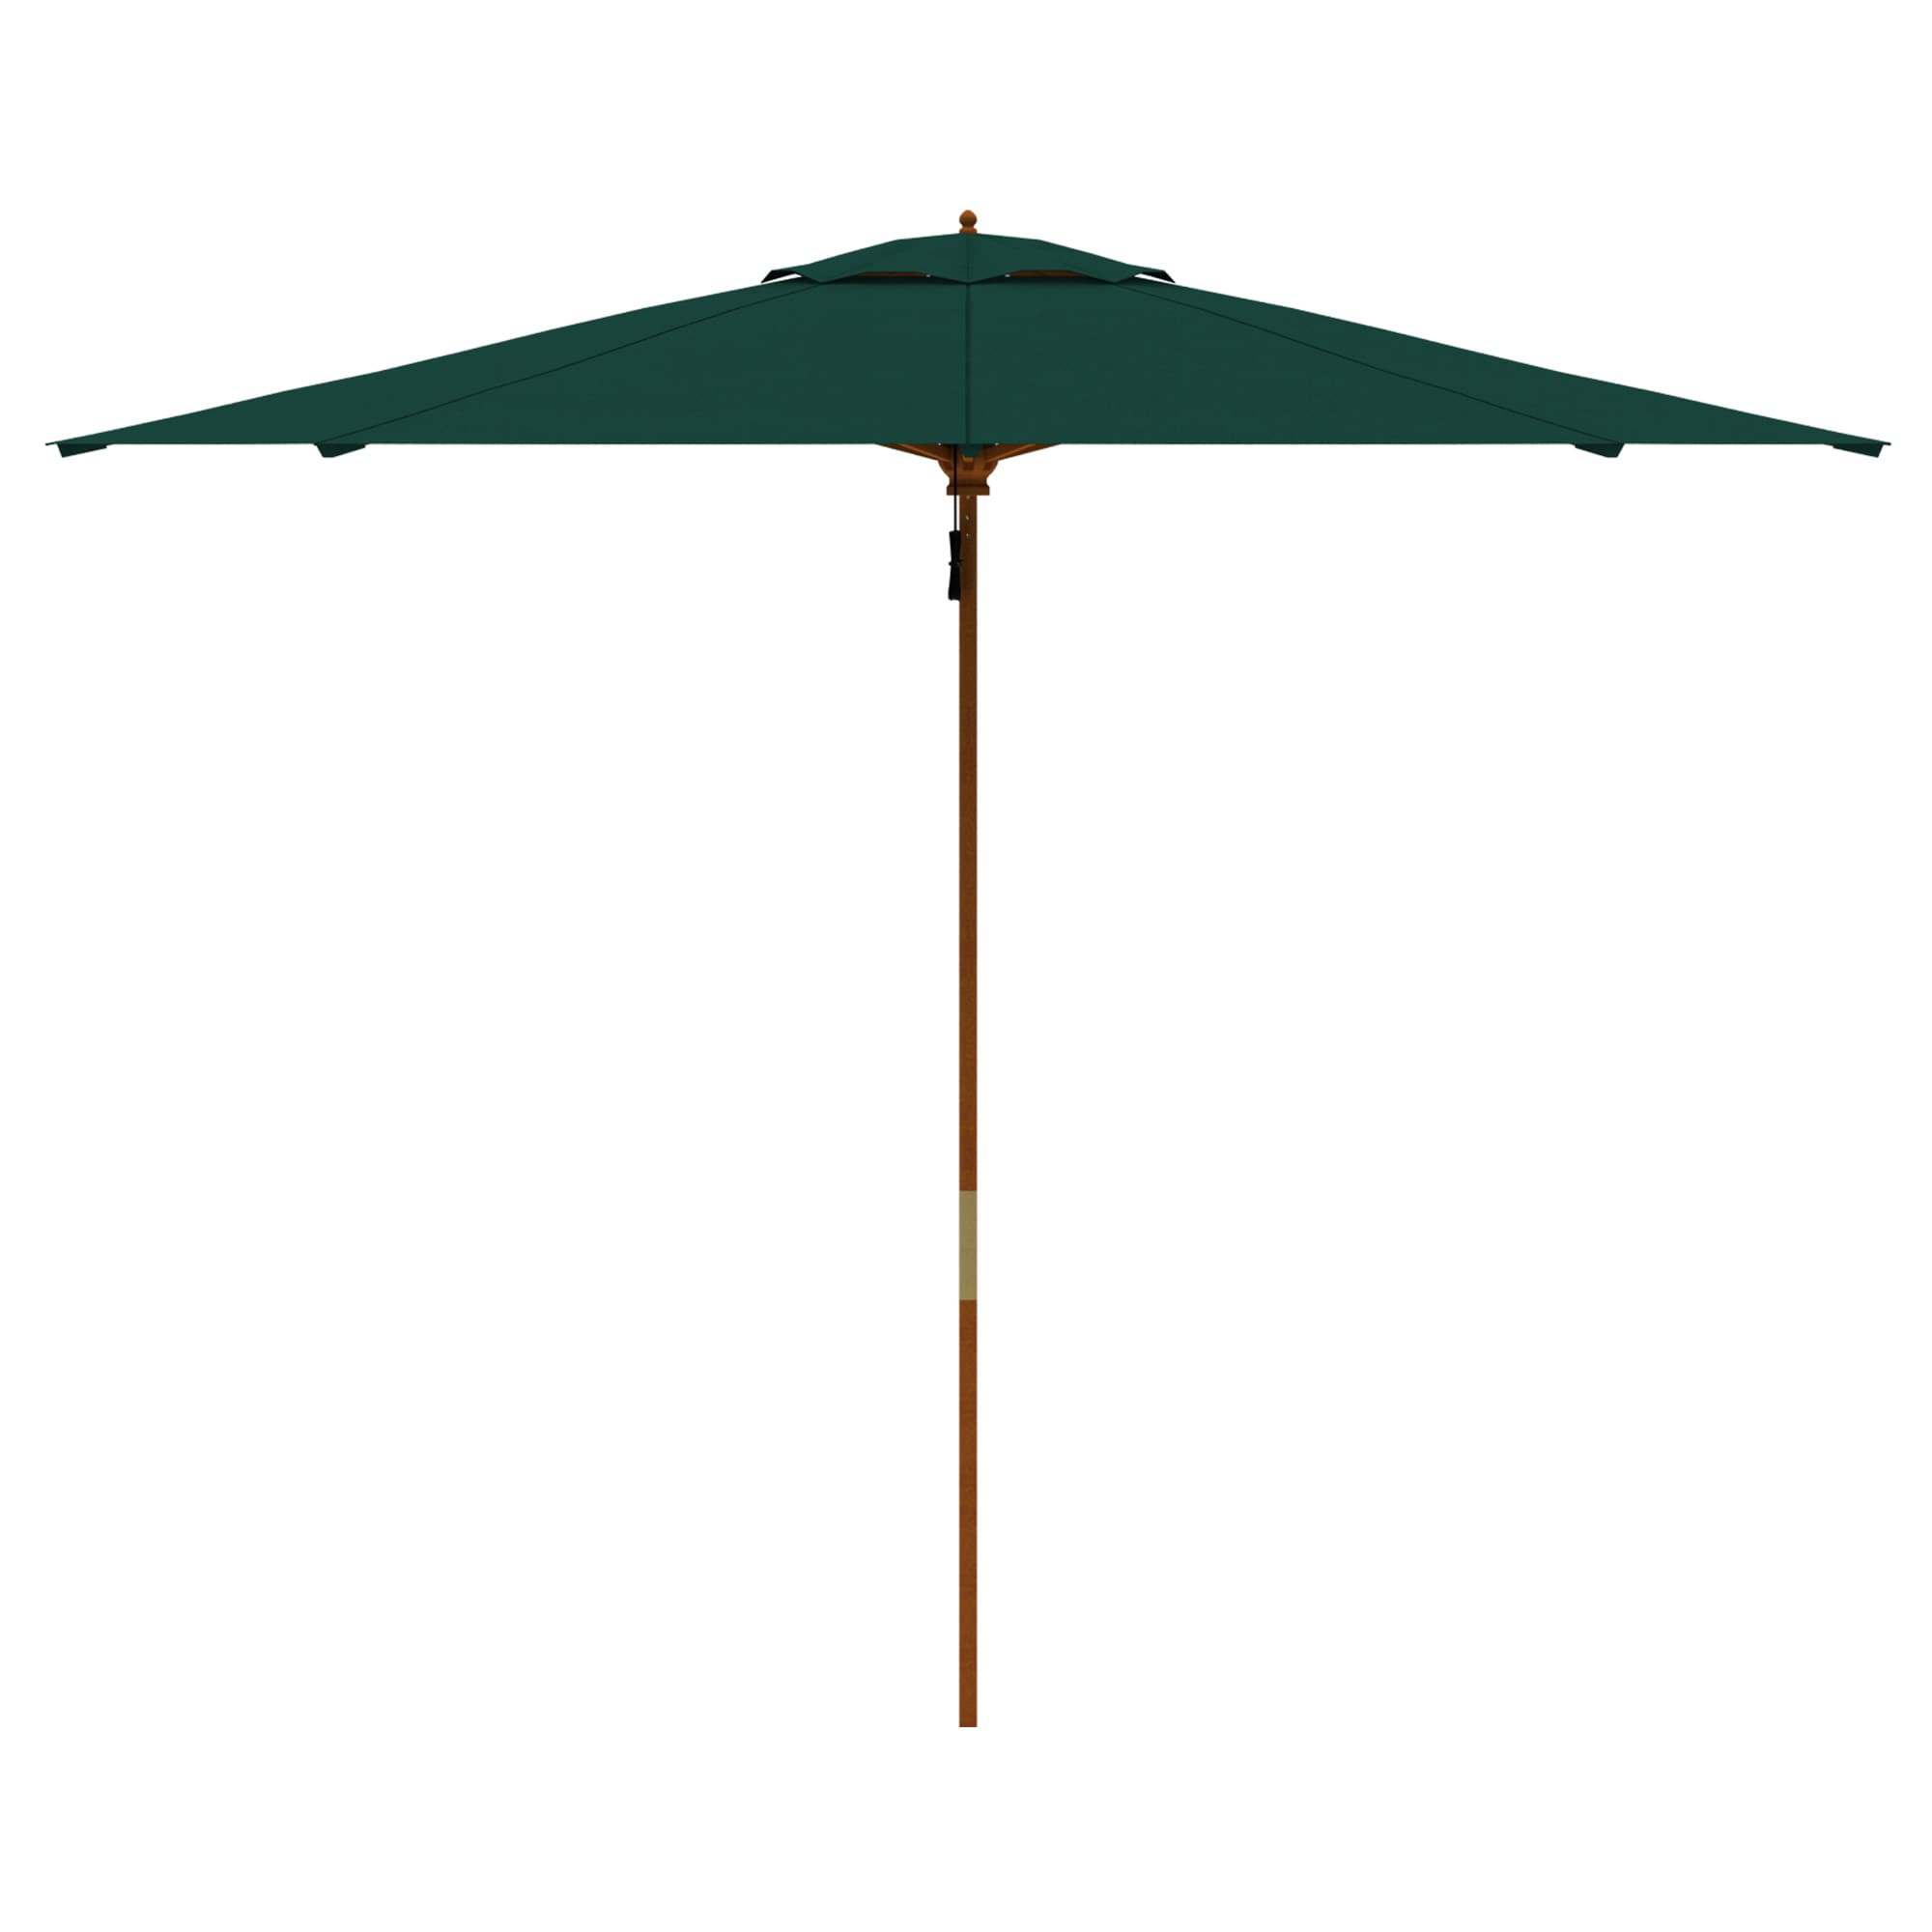 parasol en bois rond imperm able jardin terrasse protection soleil 3m paramondo ebay. Black Bedroom Furniture Sets. Home Design Ideas